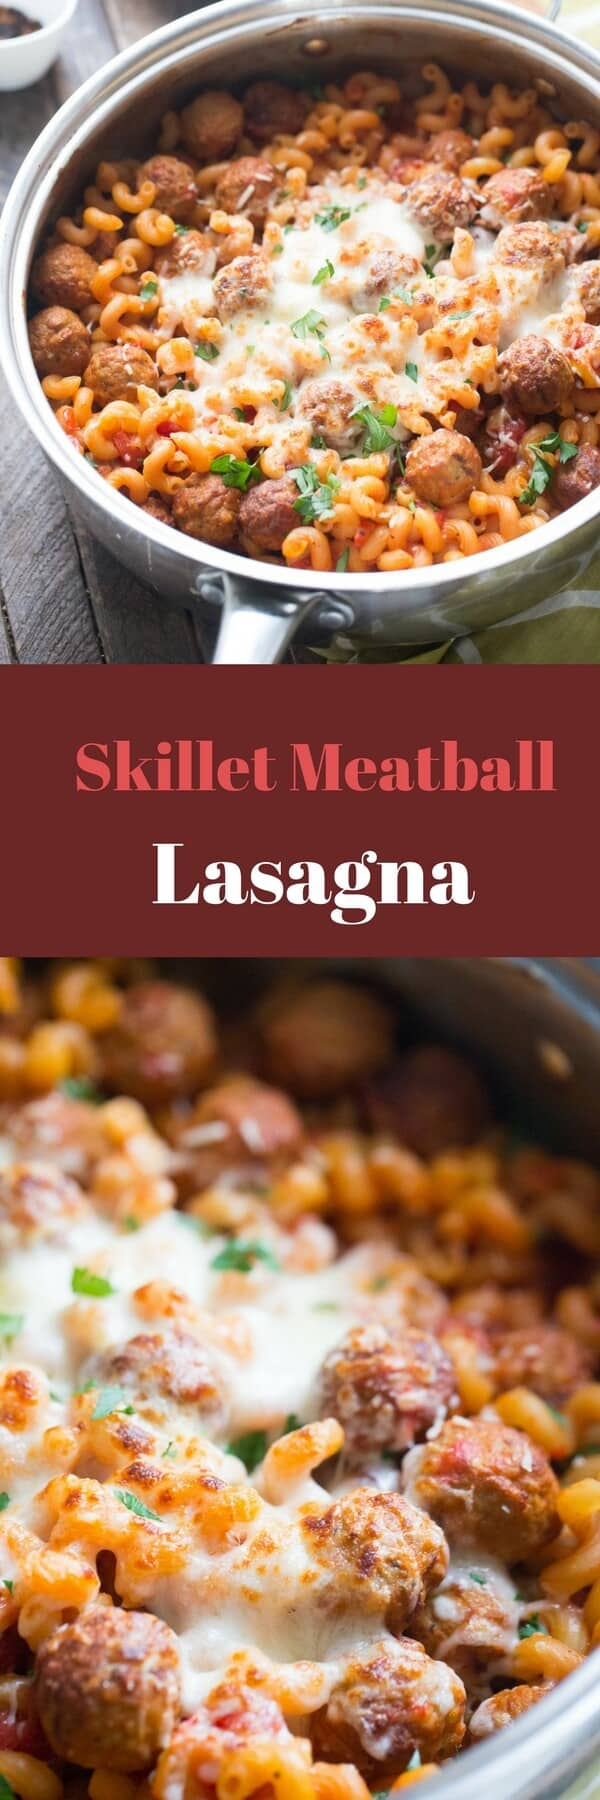 This meatball lasagna is the perfect recipe for those busy days! Simple ingredients make this meal a breeze without sacrificing any flavor!